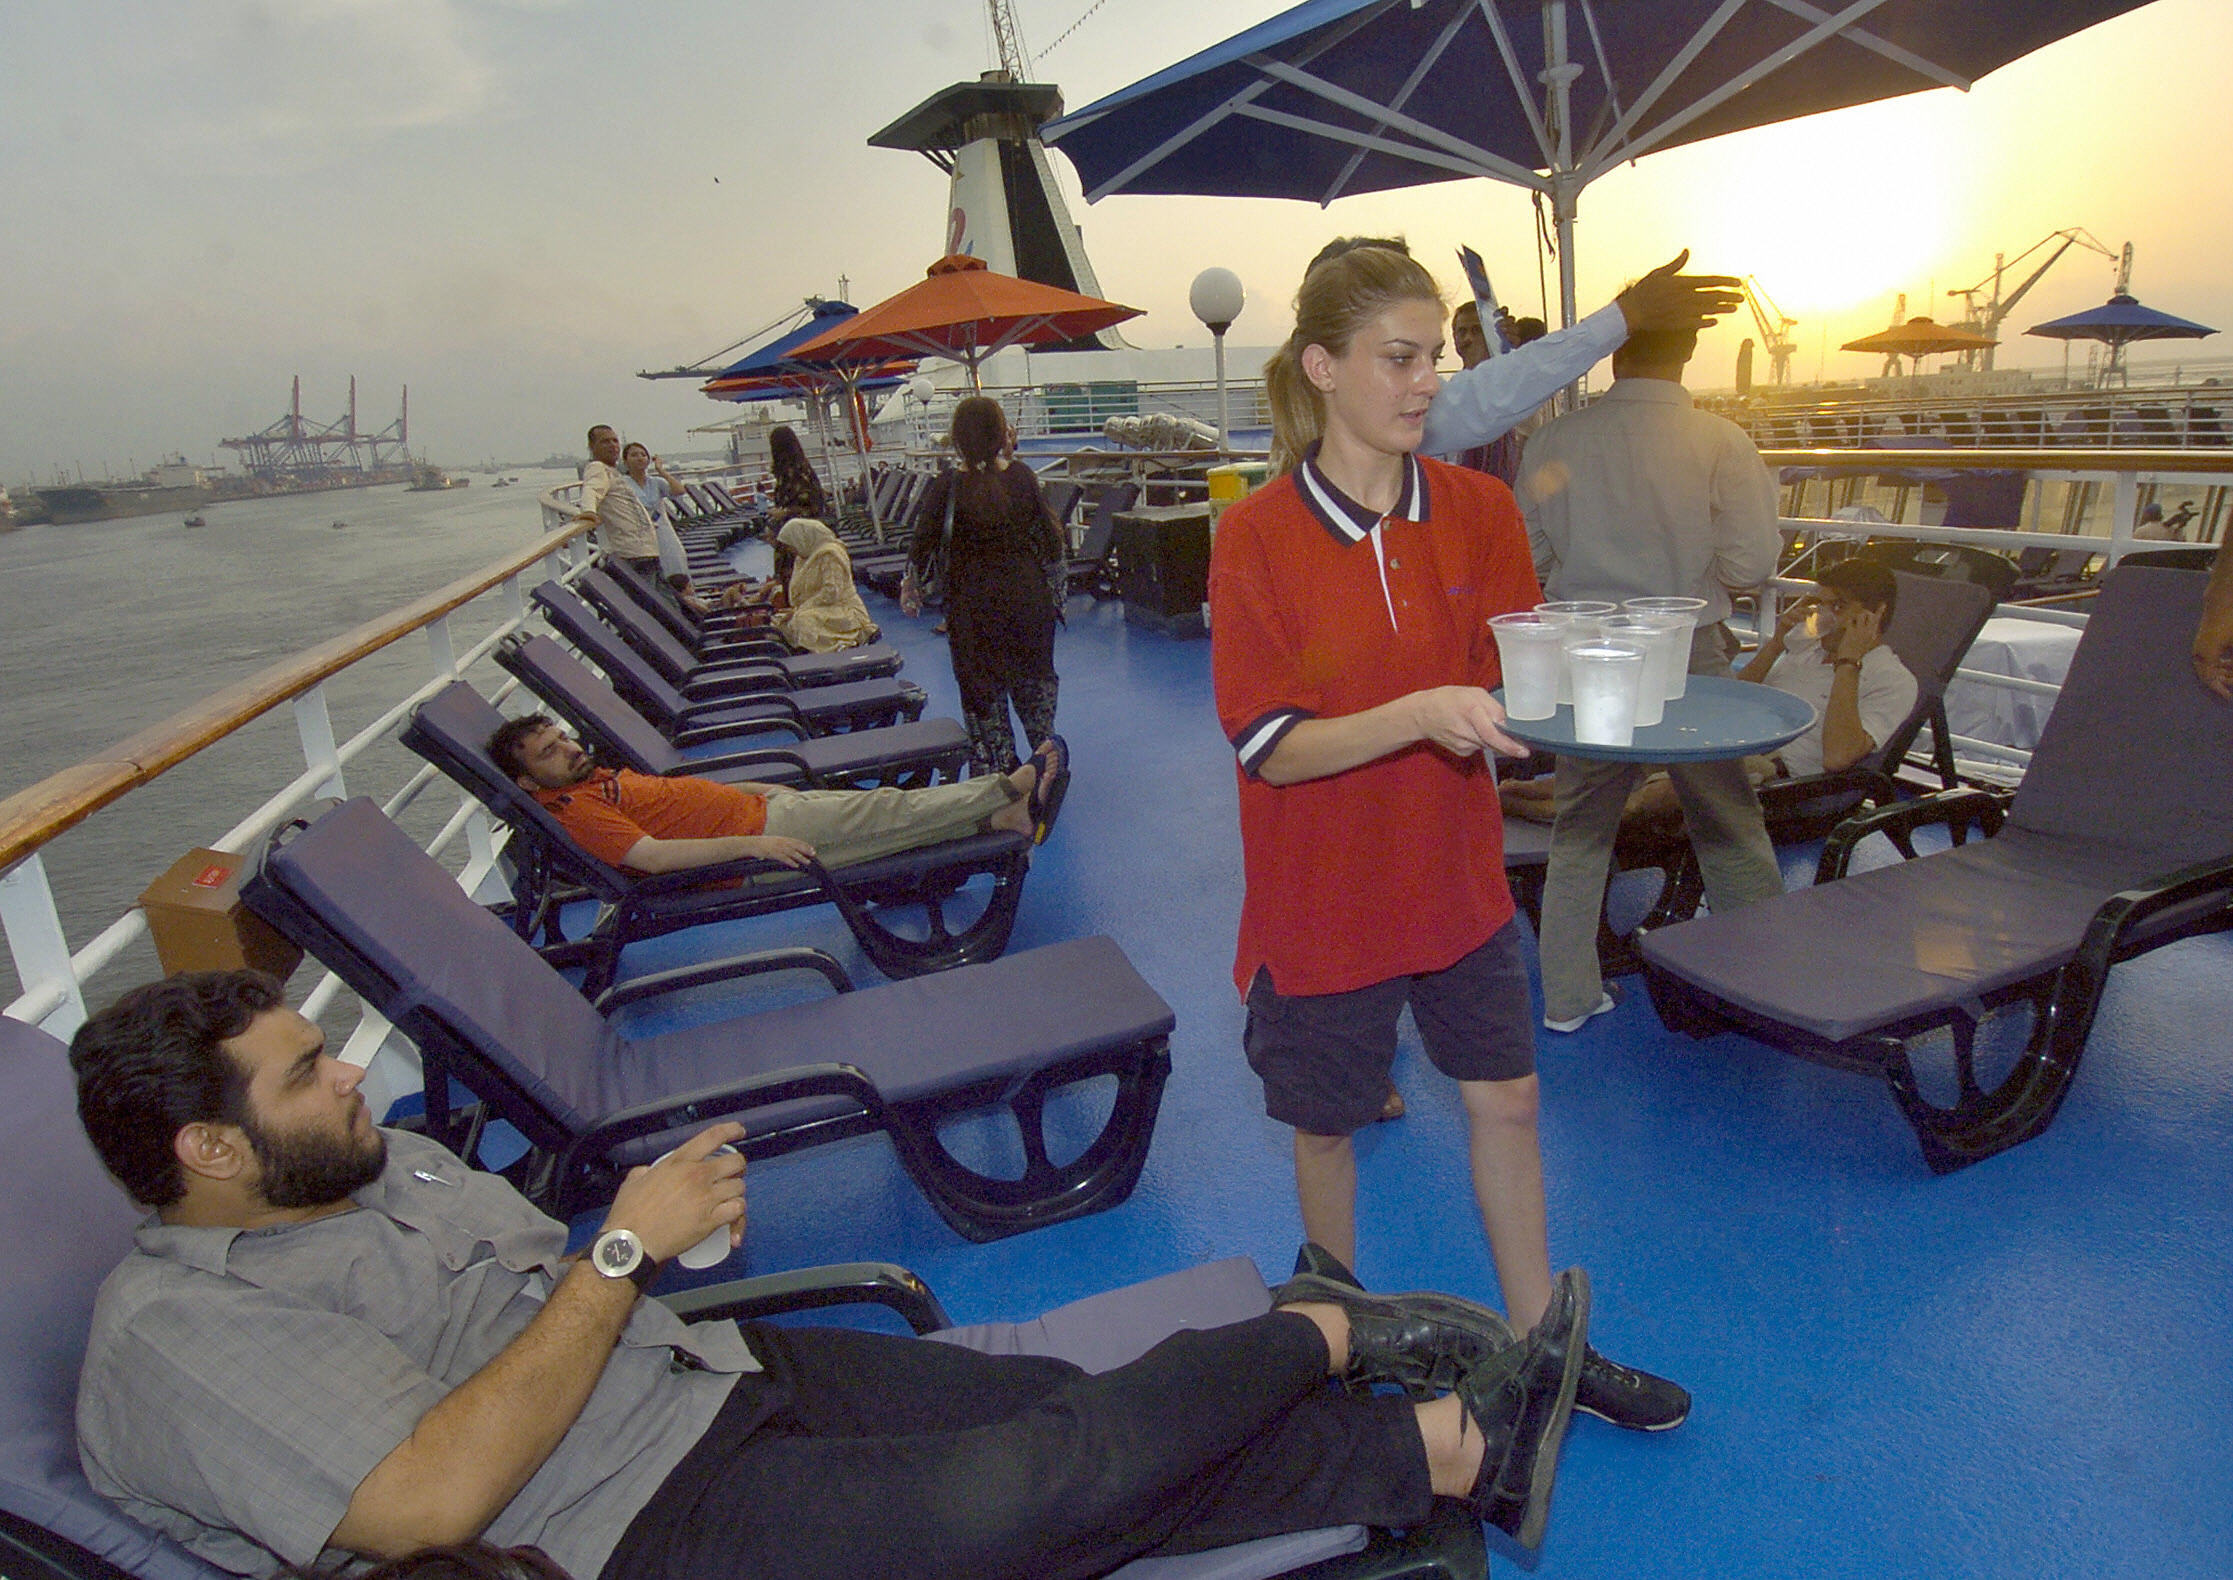 A foreign crew member serves drink on cruise ship